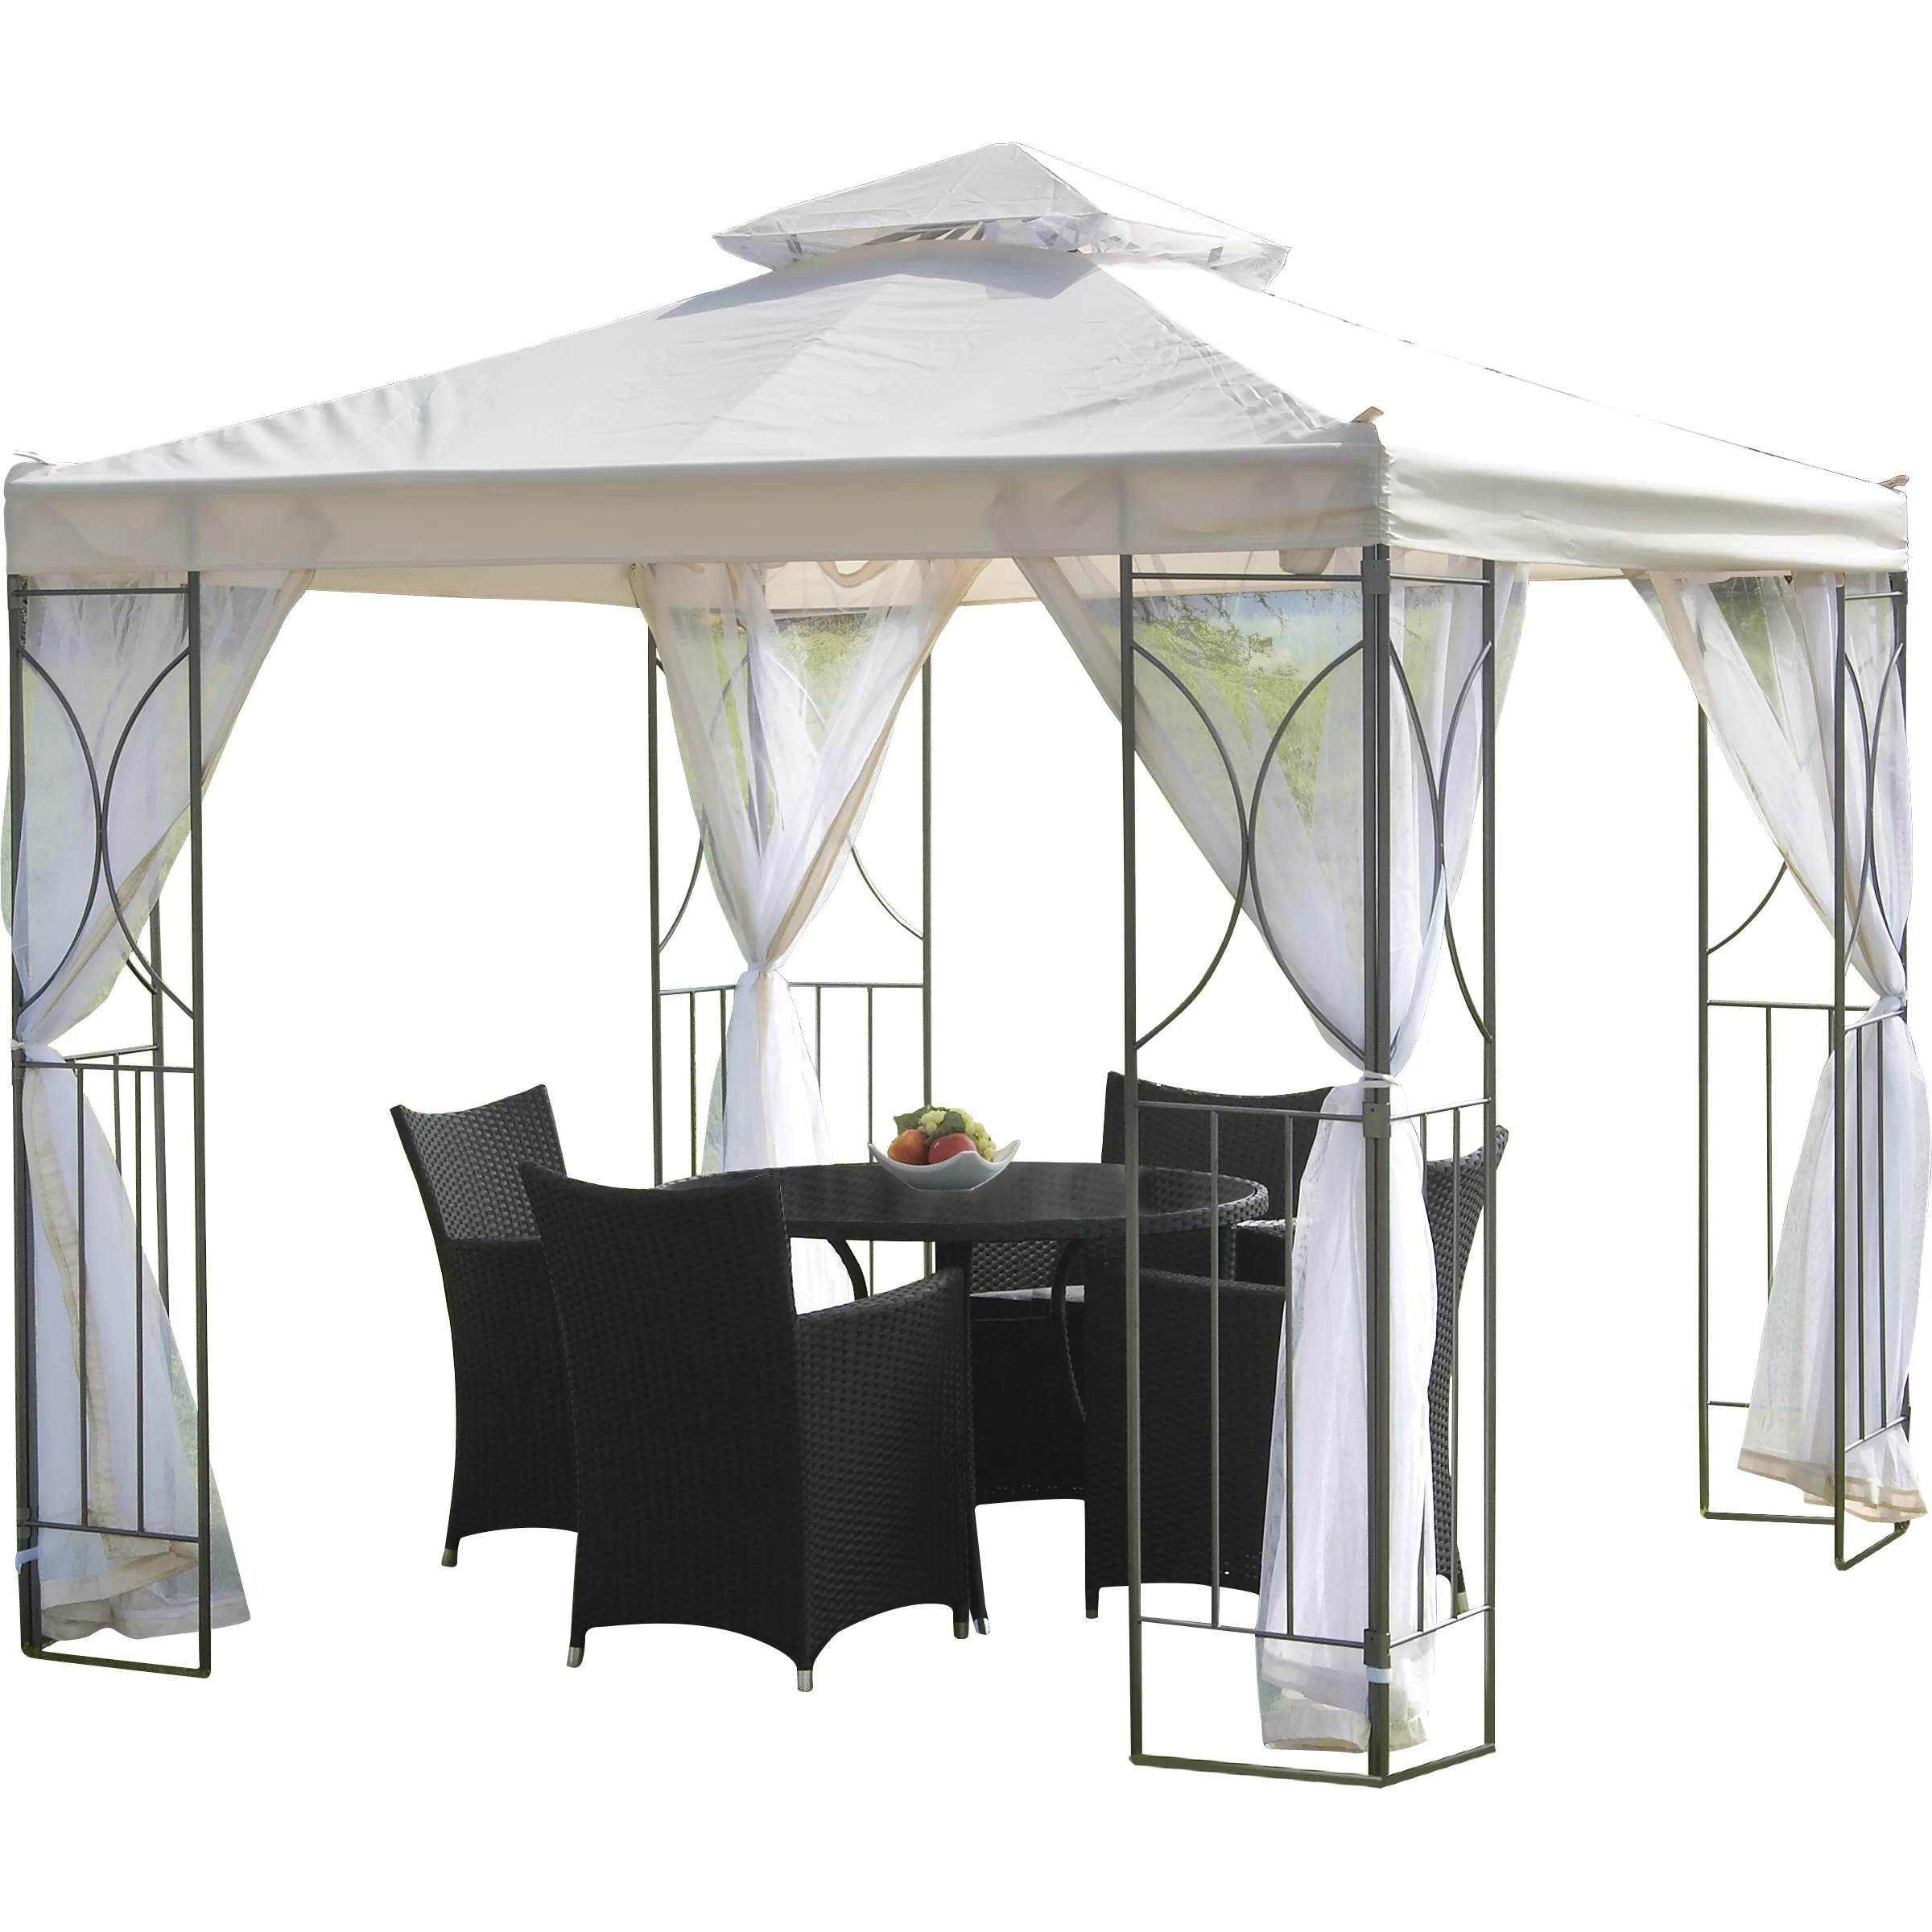 SunTime Outdoor Living Polenza 8 Ft. W x 8 Ft. D Metal ... on Suntime Outdoor Living  id=47477